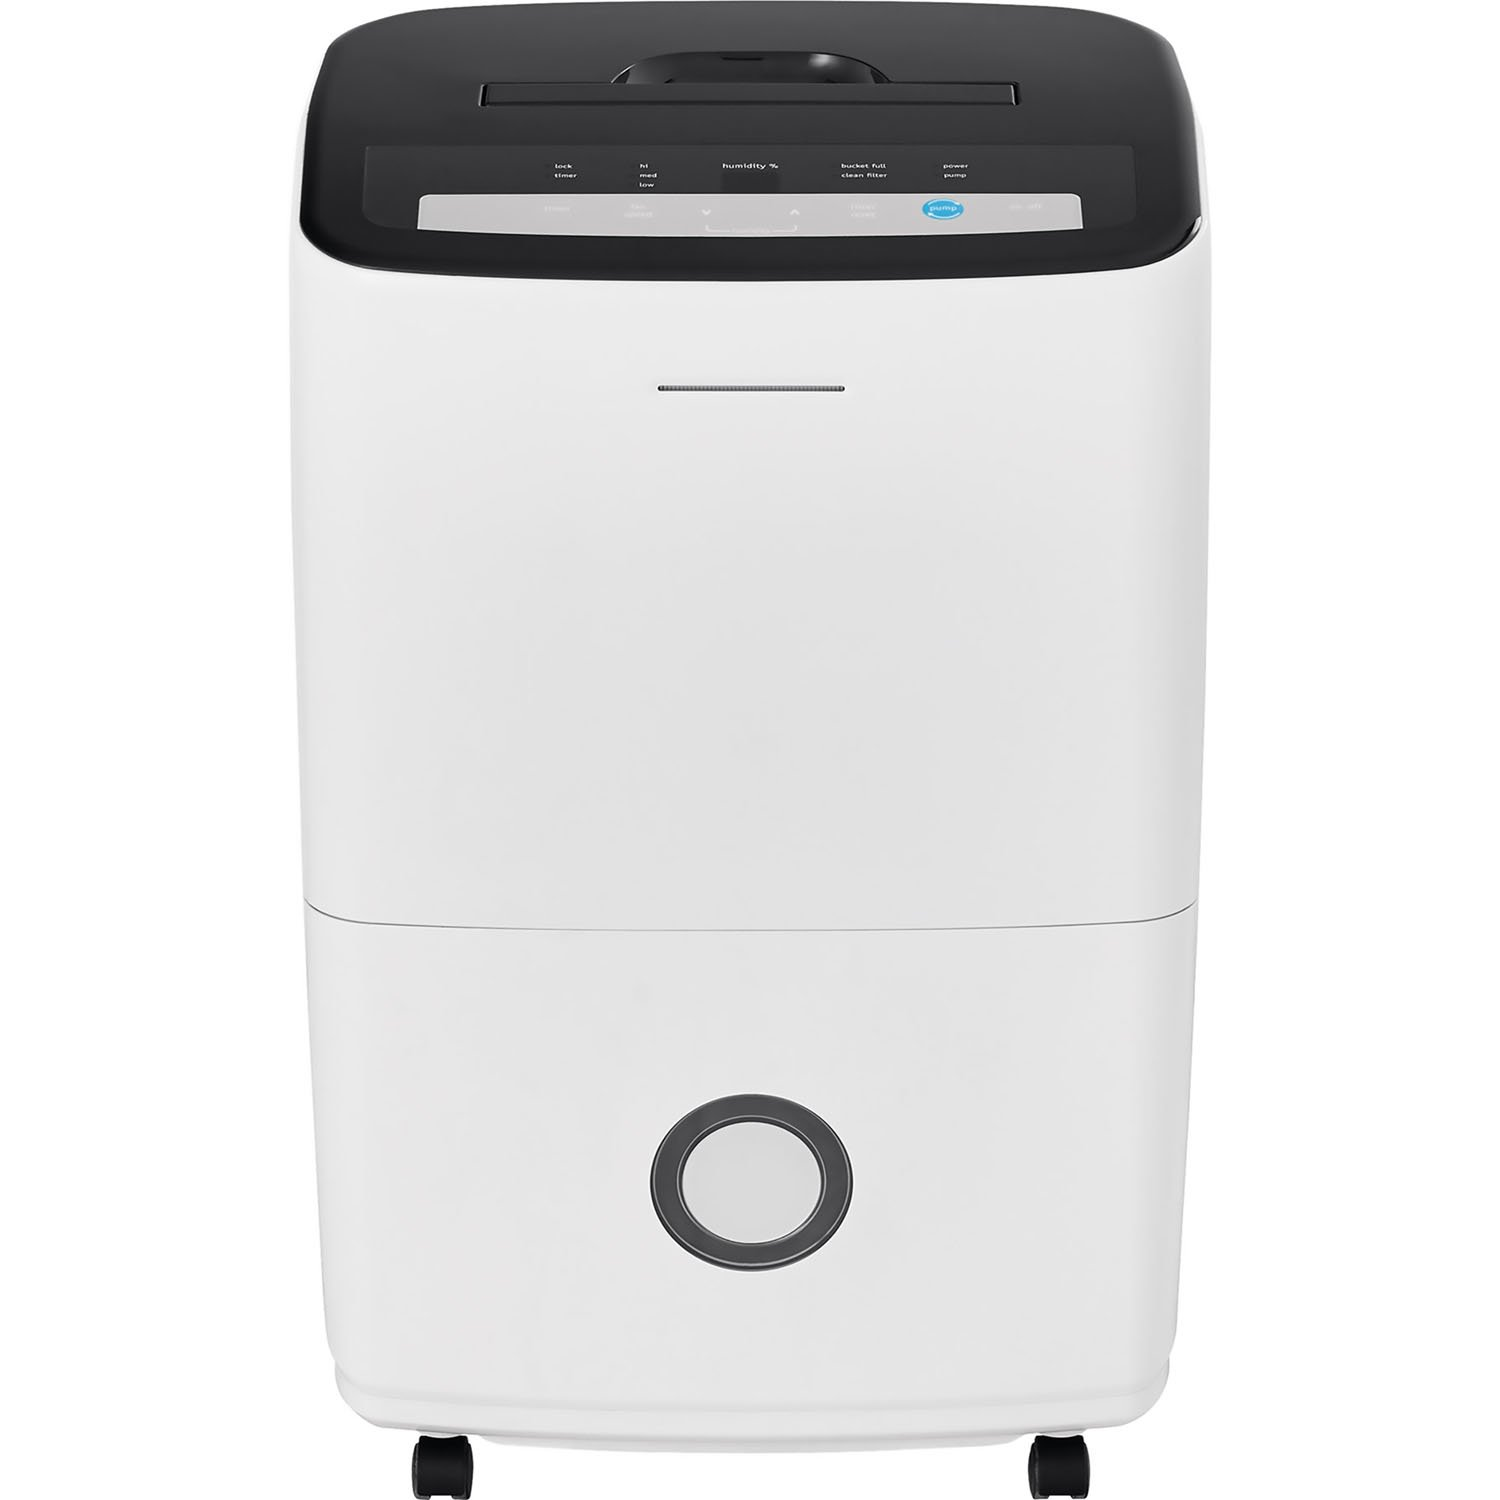 Frigidaire FFAP7033T1 70 13.1-Pint Bucket Capacity, Mesh Filter and Effortless Humidity Control, Dehumidifier with Built-in Pump in White